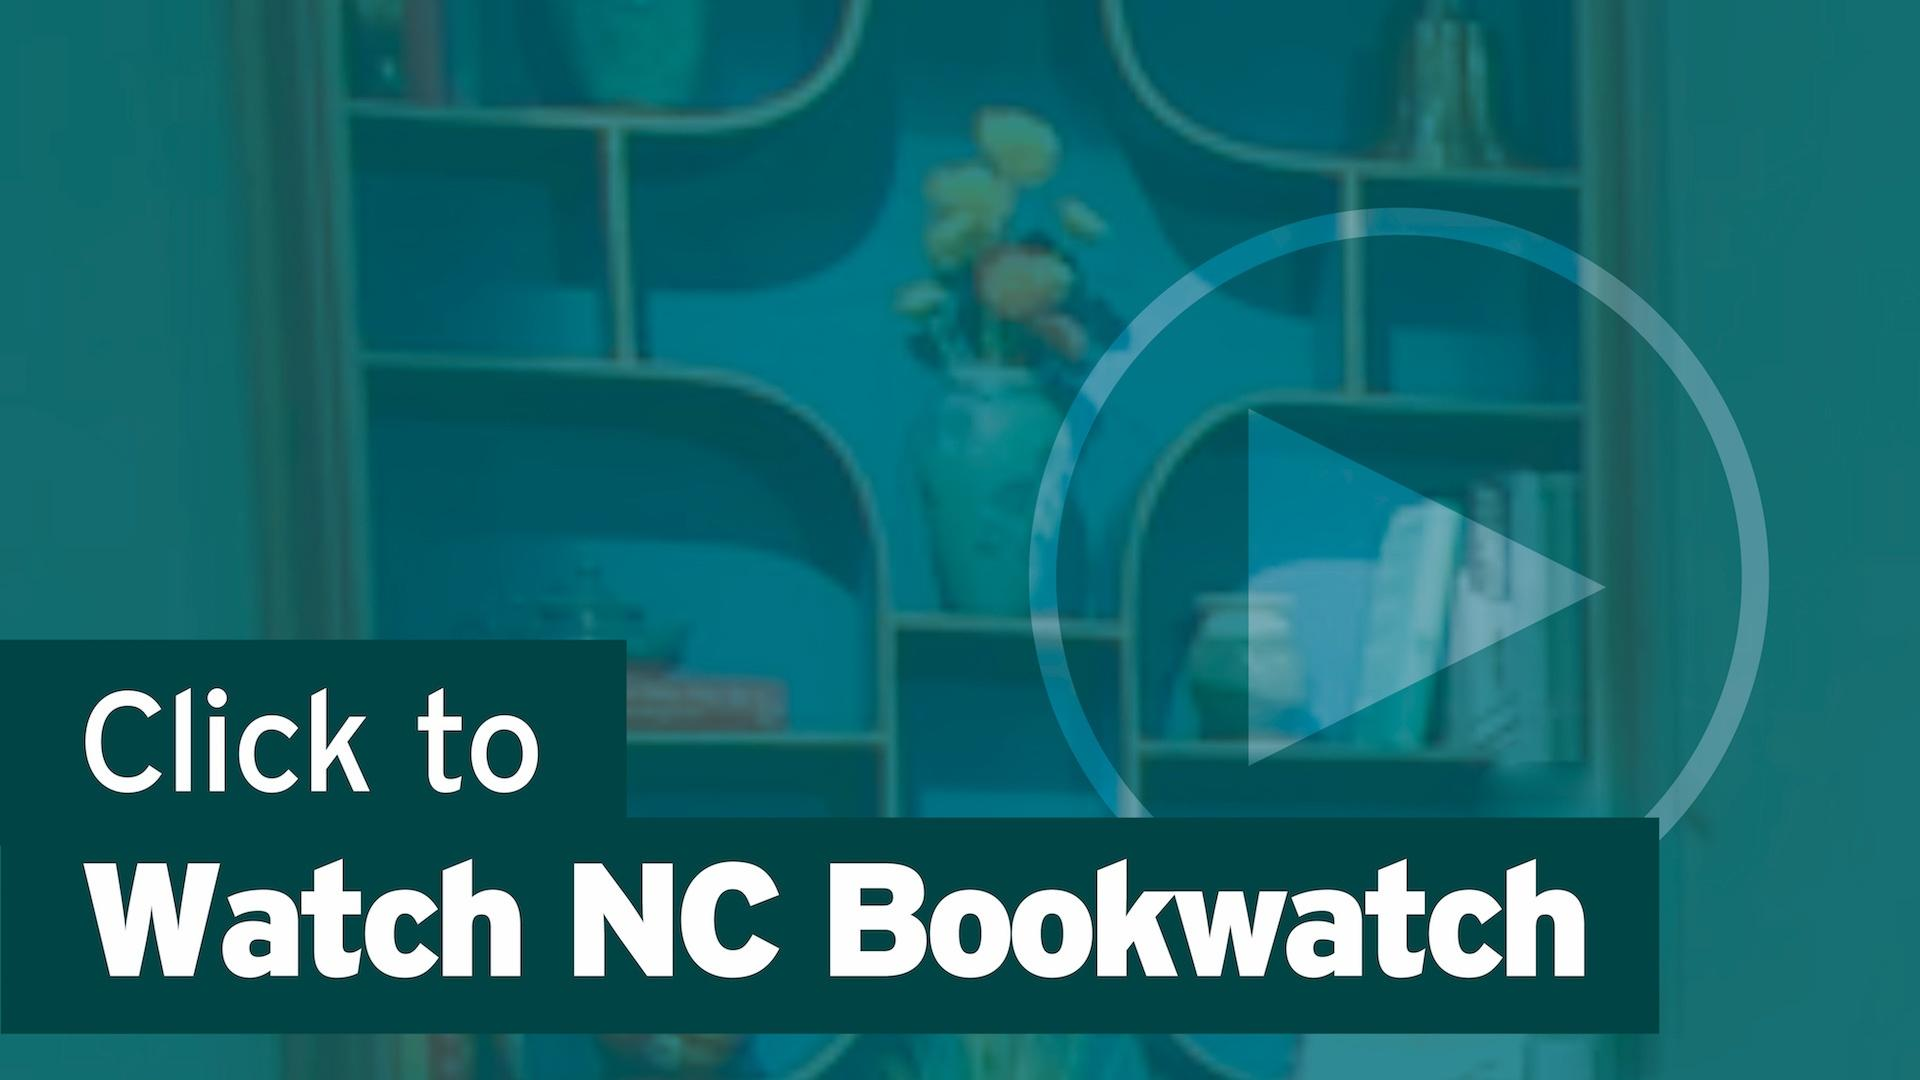 Click Here to Watch NC Bookwatch